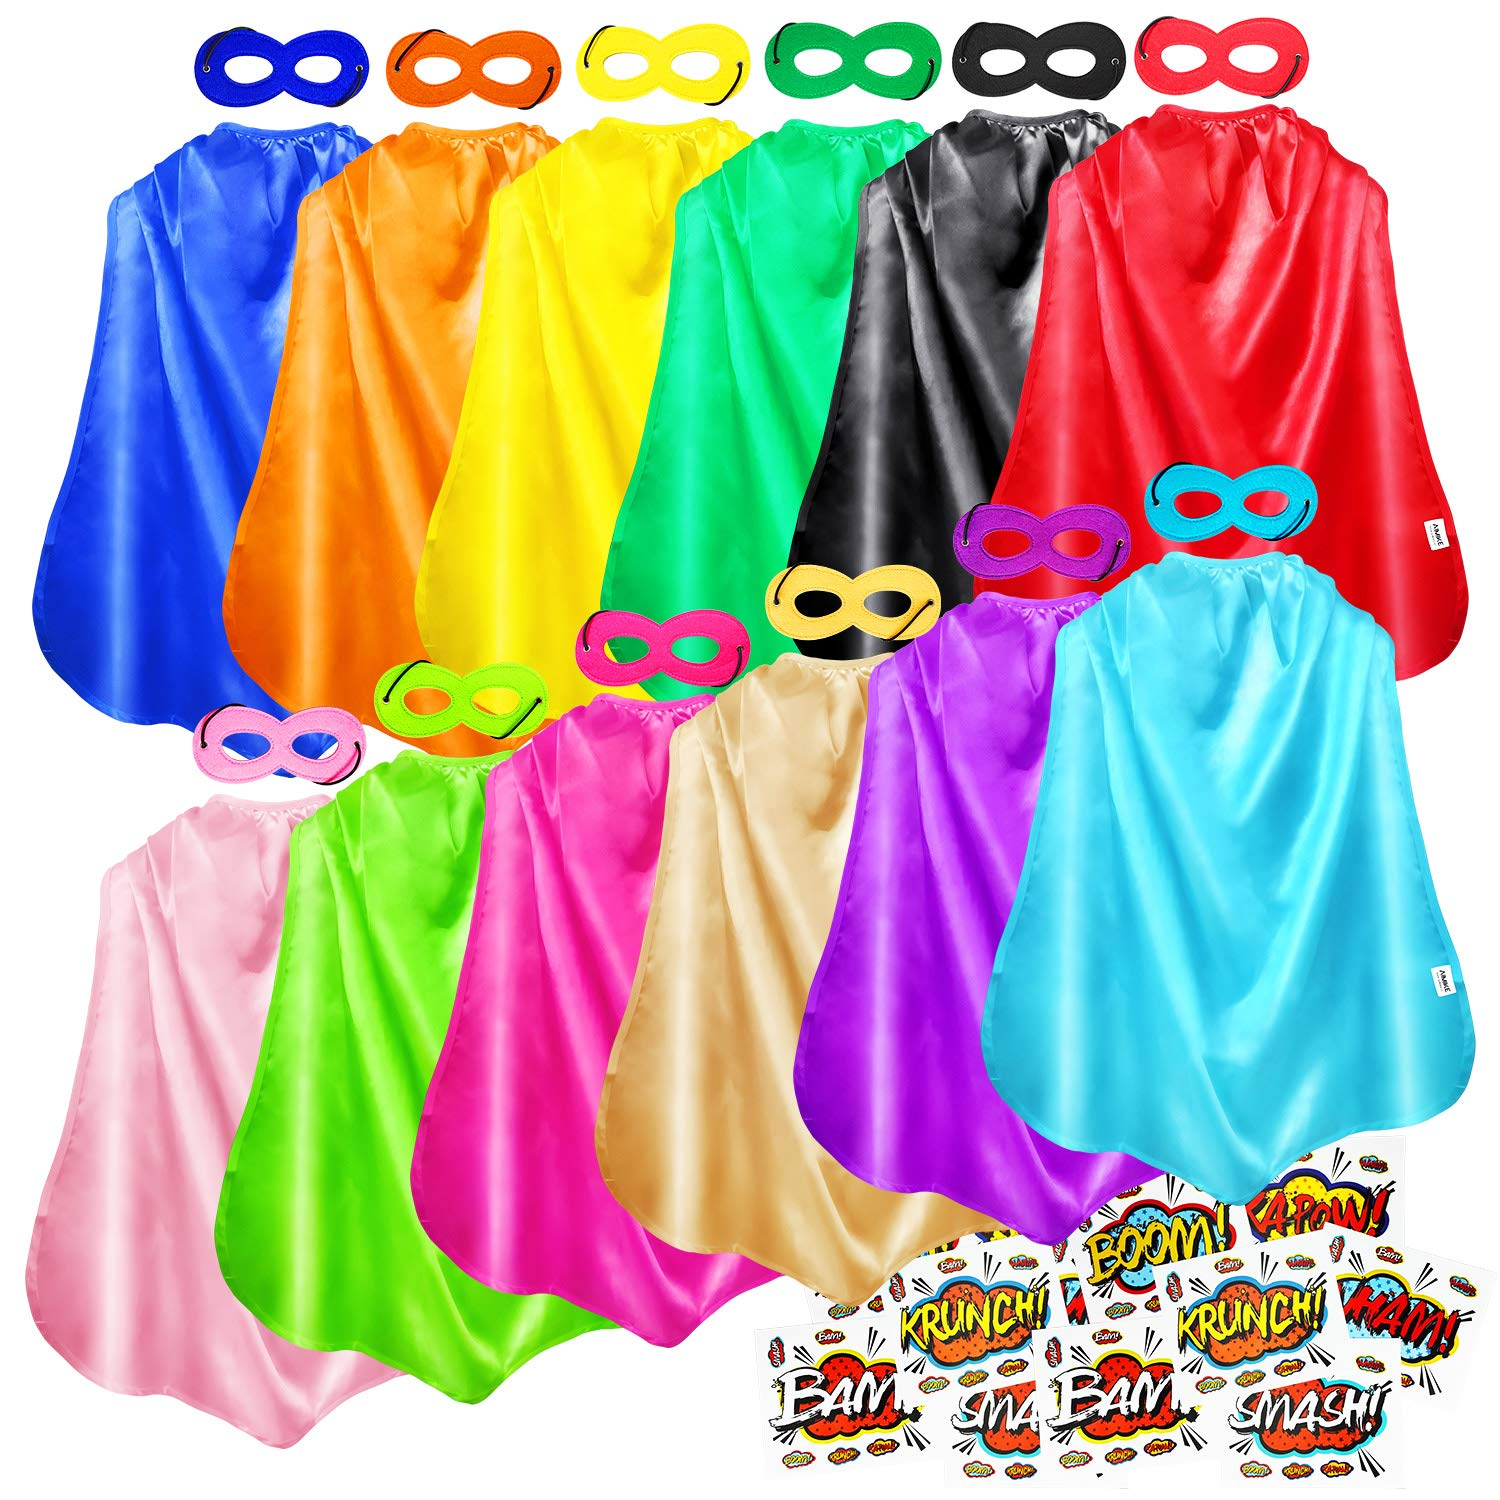 AIMIKE Superhero Capes and Masks, Bulk Pack for Kids Party, DIY Dress Up Superhero Costume, 12 Colors Sets with Superhero Stickers